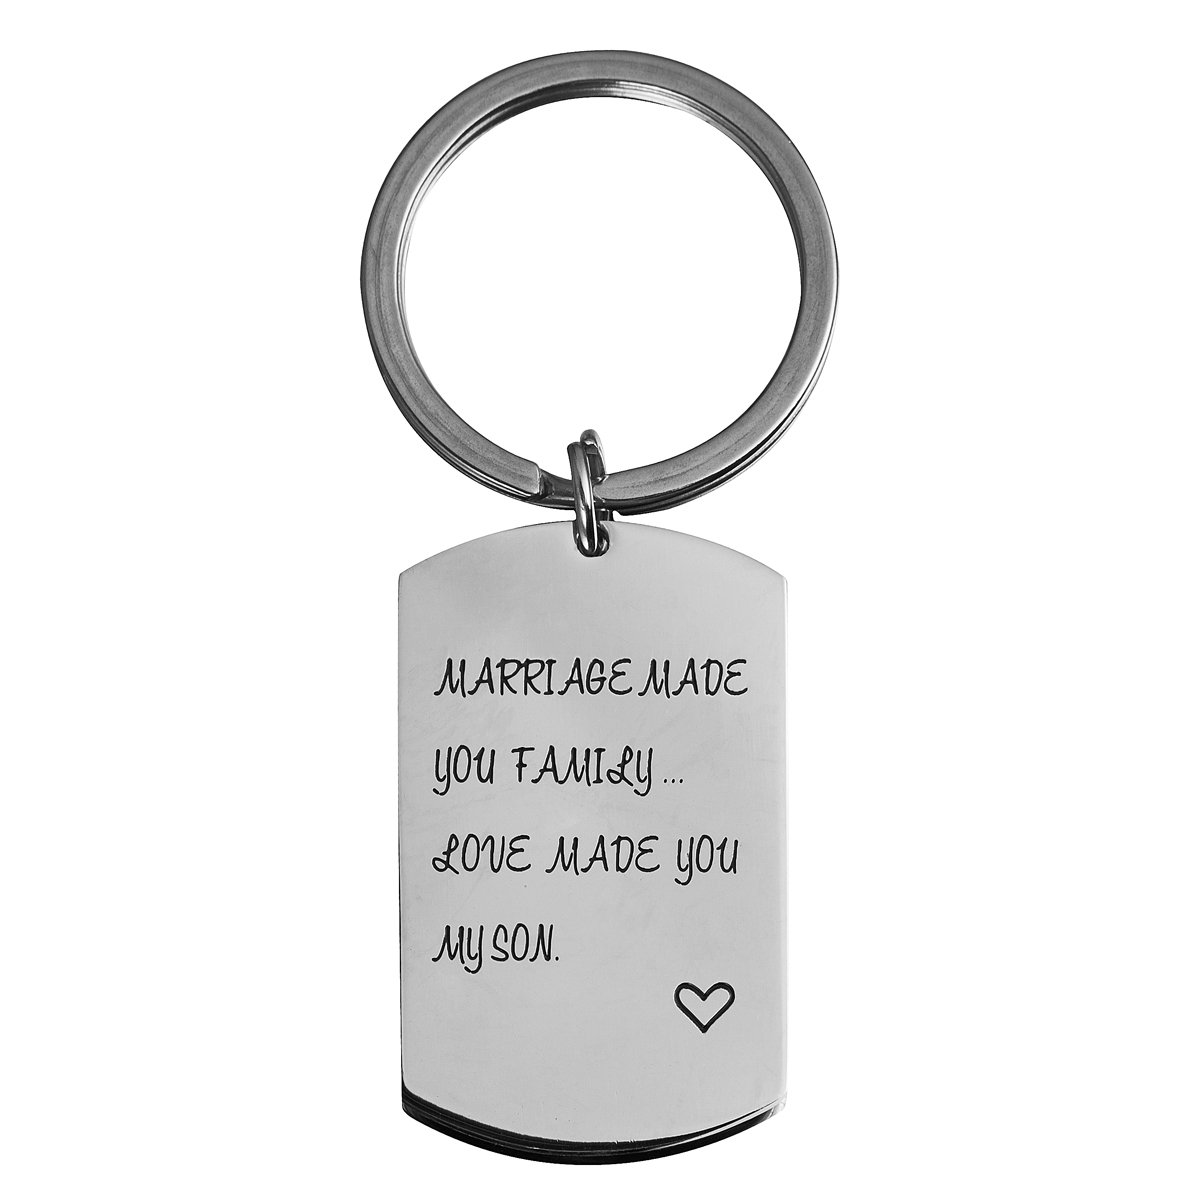 omodofo Marriage Made You My Family Love Made You My Son Wedding Party Gift Son In law Fathers Day Gift Keychain by omodofo (Image #1)